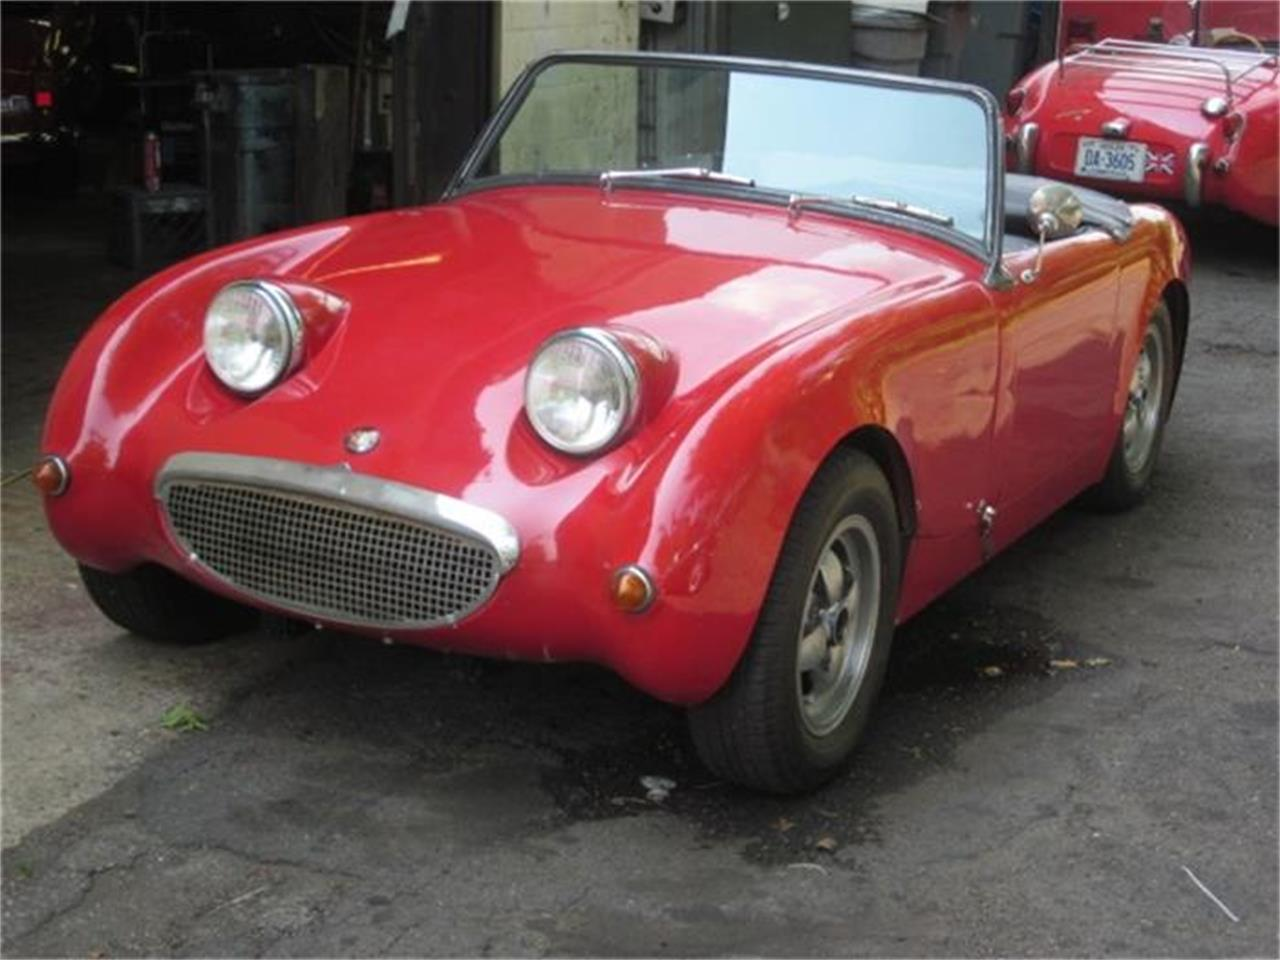 Large Picture of '60 Bugeye Sprite - EAK3